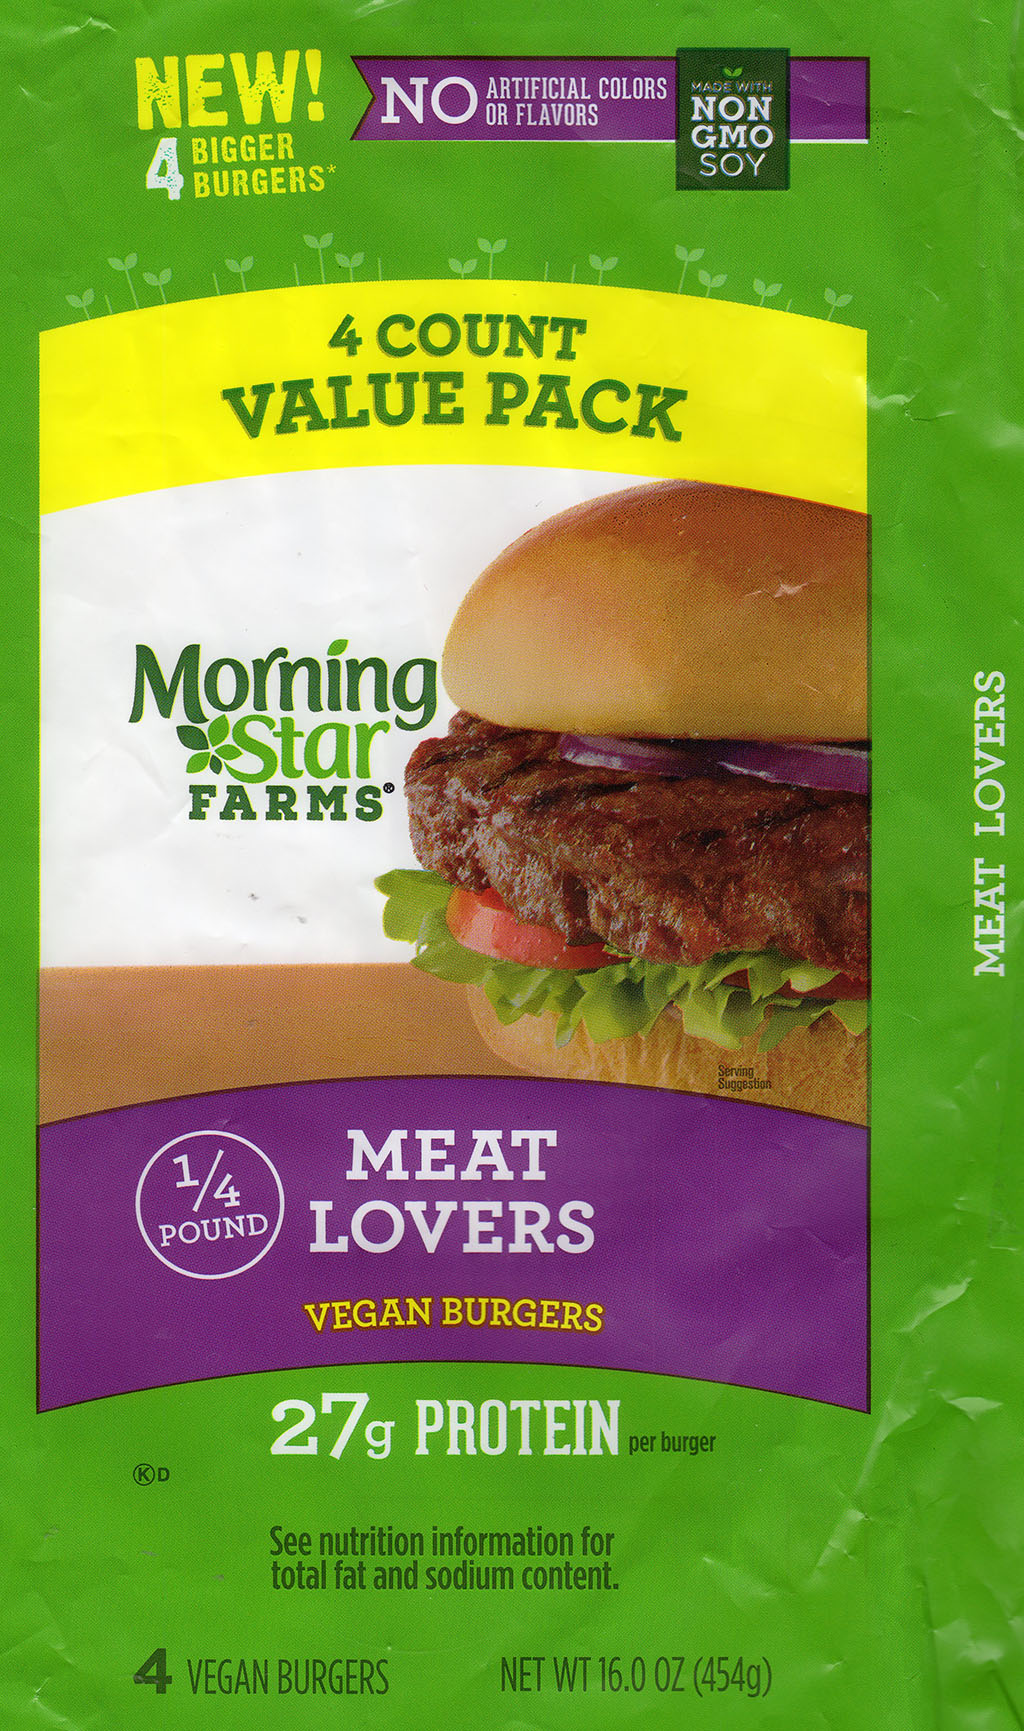 MorningStar Farms Meat Lovers Vegan Burgers package front